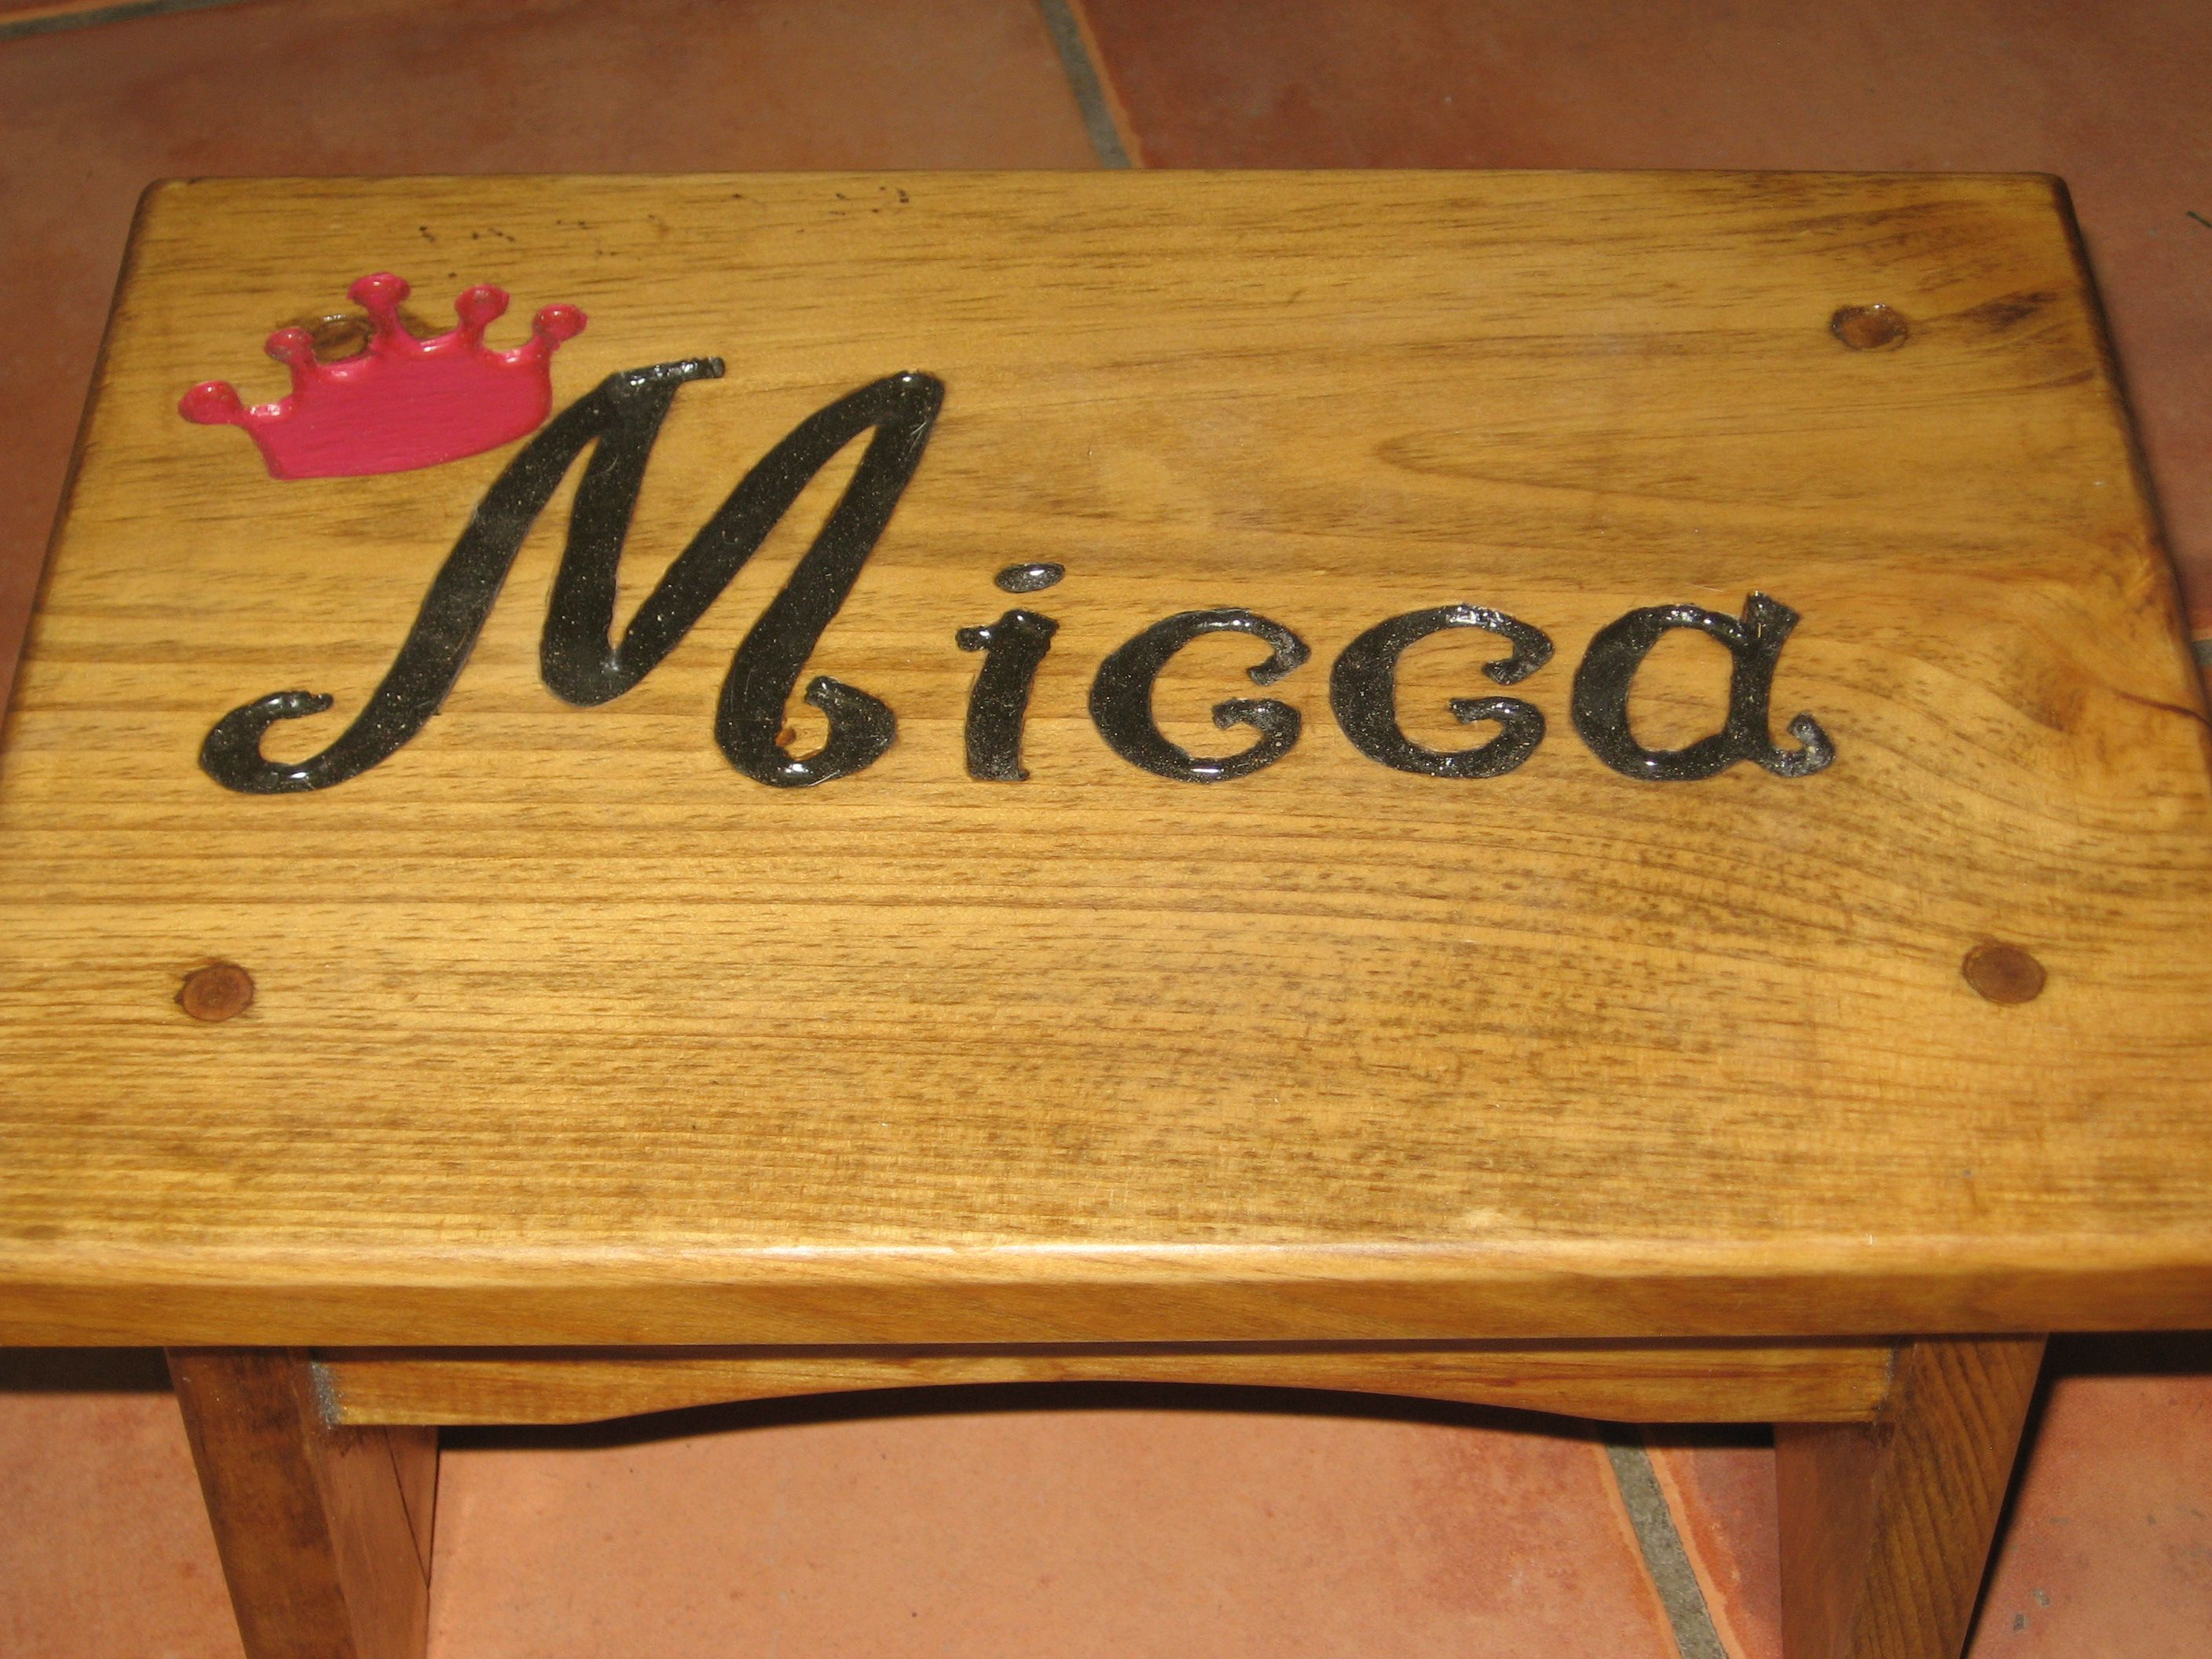 Engraved a stepstool by making a stencil and carving out the letters engraved a stepstool by making a stencil and carving out the letters with a dremel tool spiritdancerdesigns Images